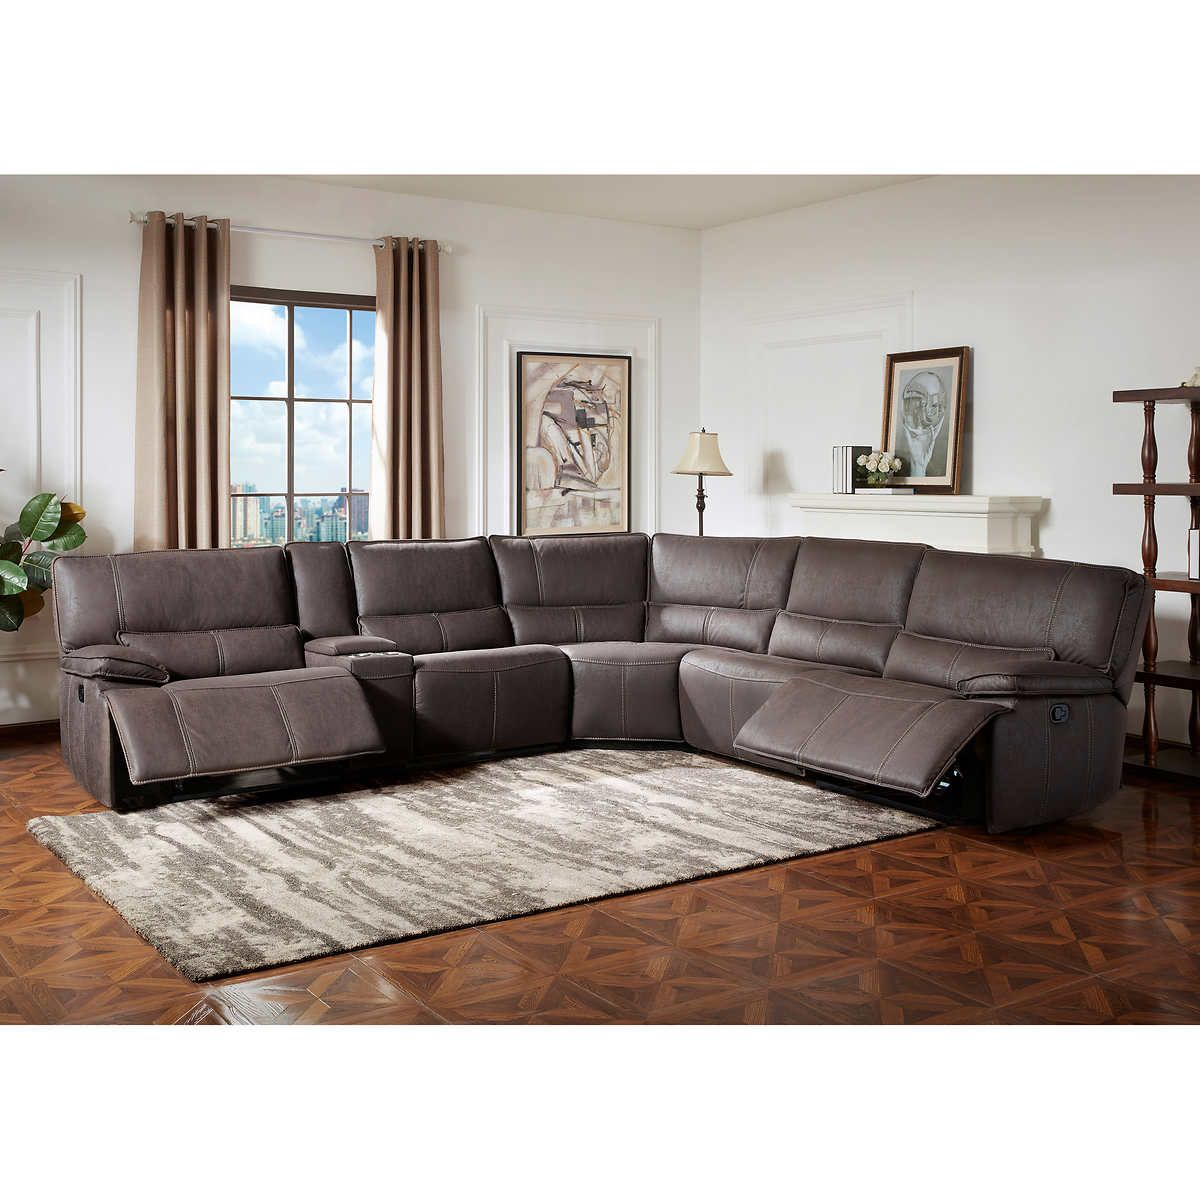 Pin By Angie Logan On Our New Home Sectional Sofa With Recliner Fabric Sectional Sofas Leather Reclining Sectional Sofa